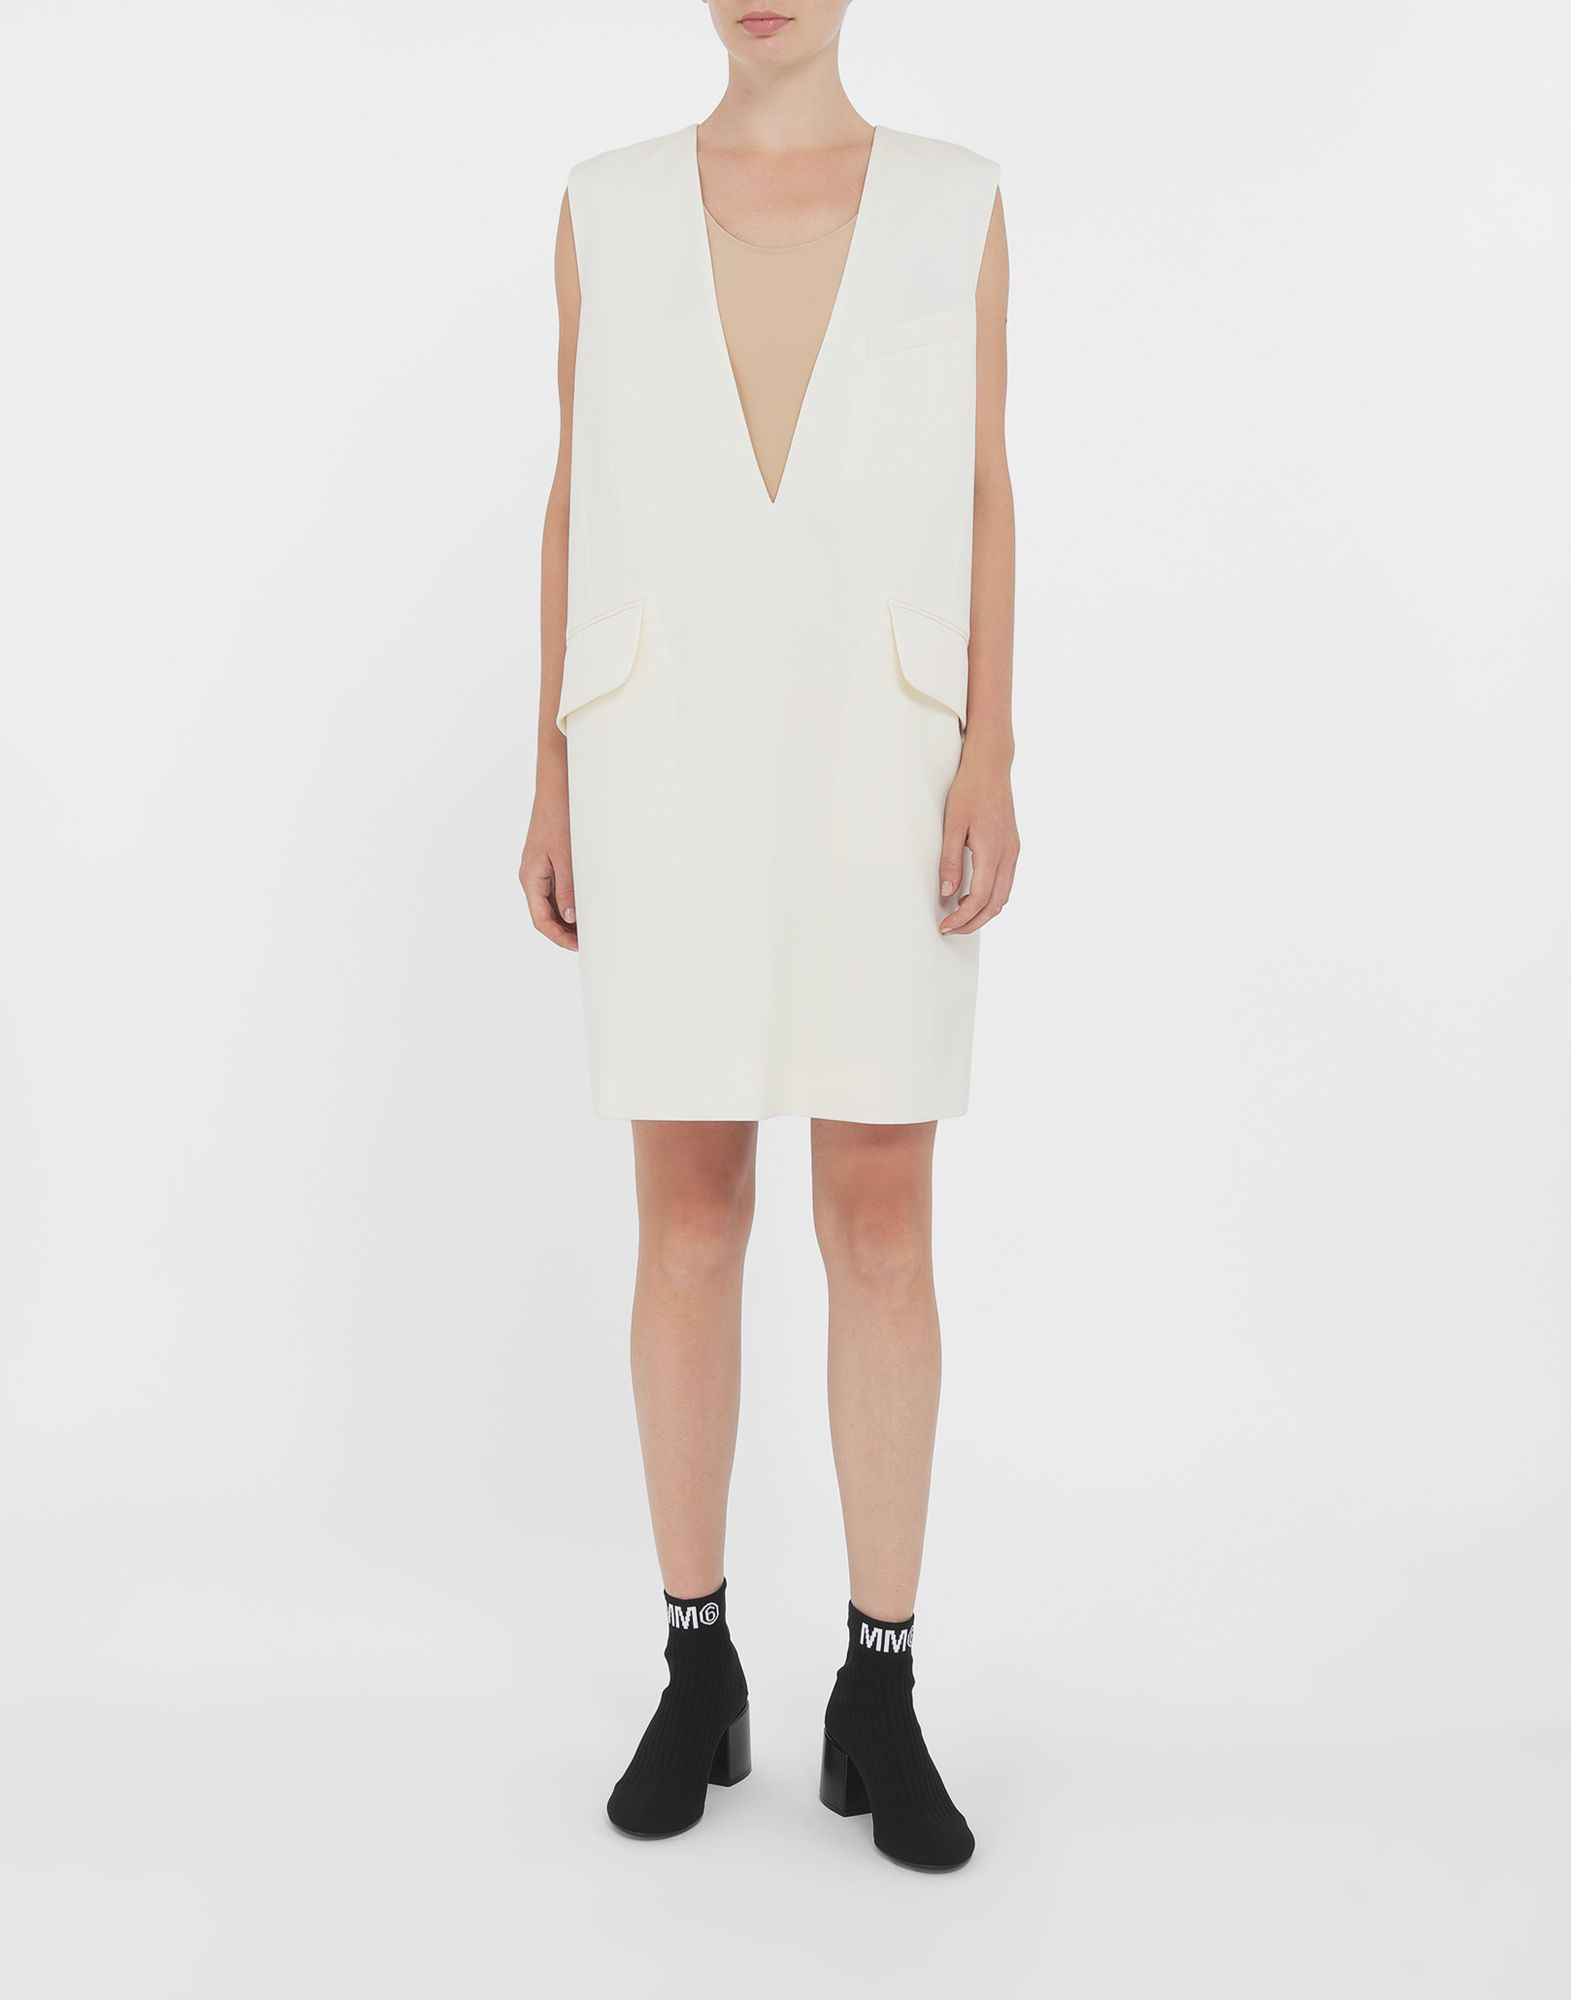 MM6 MAISON MARGIELA Décolleté dress Short dress Woman r